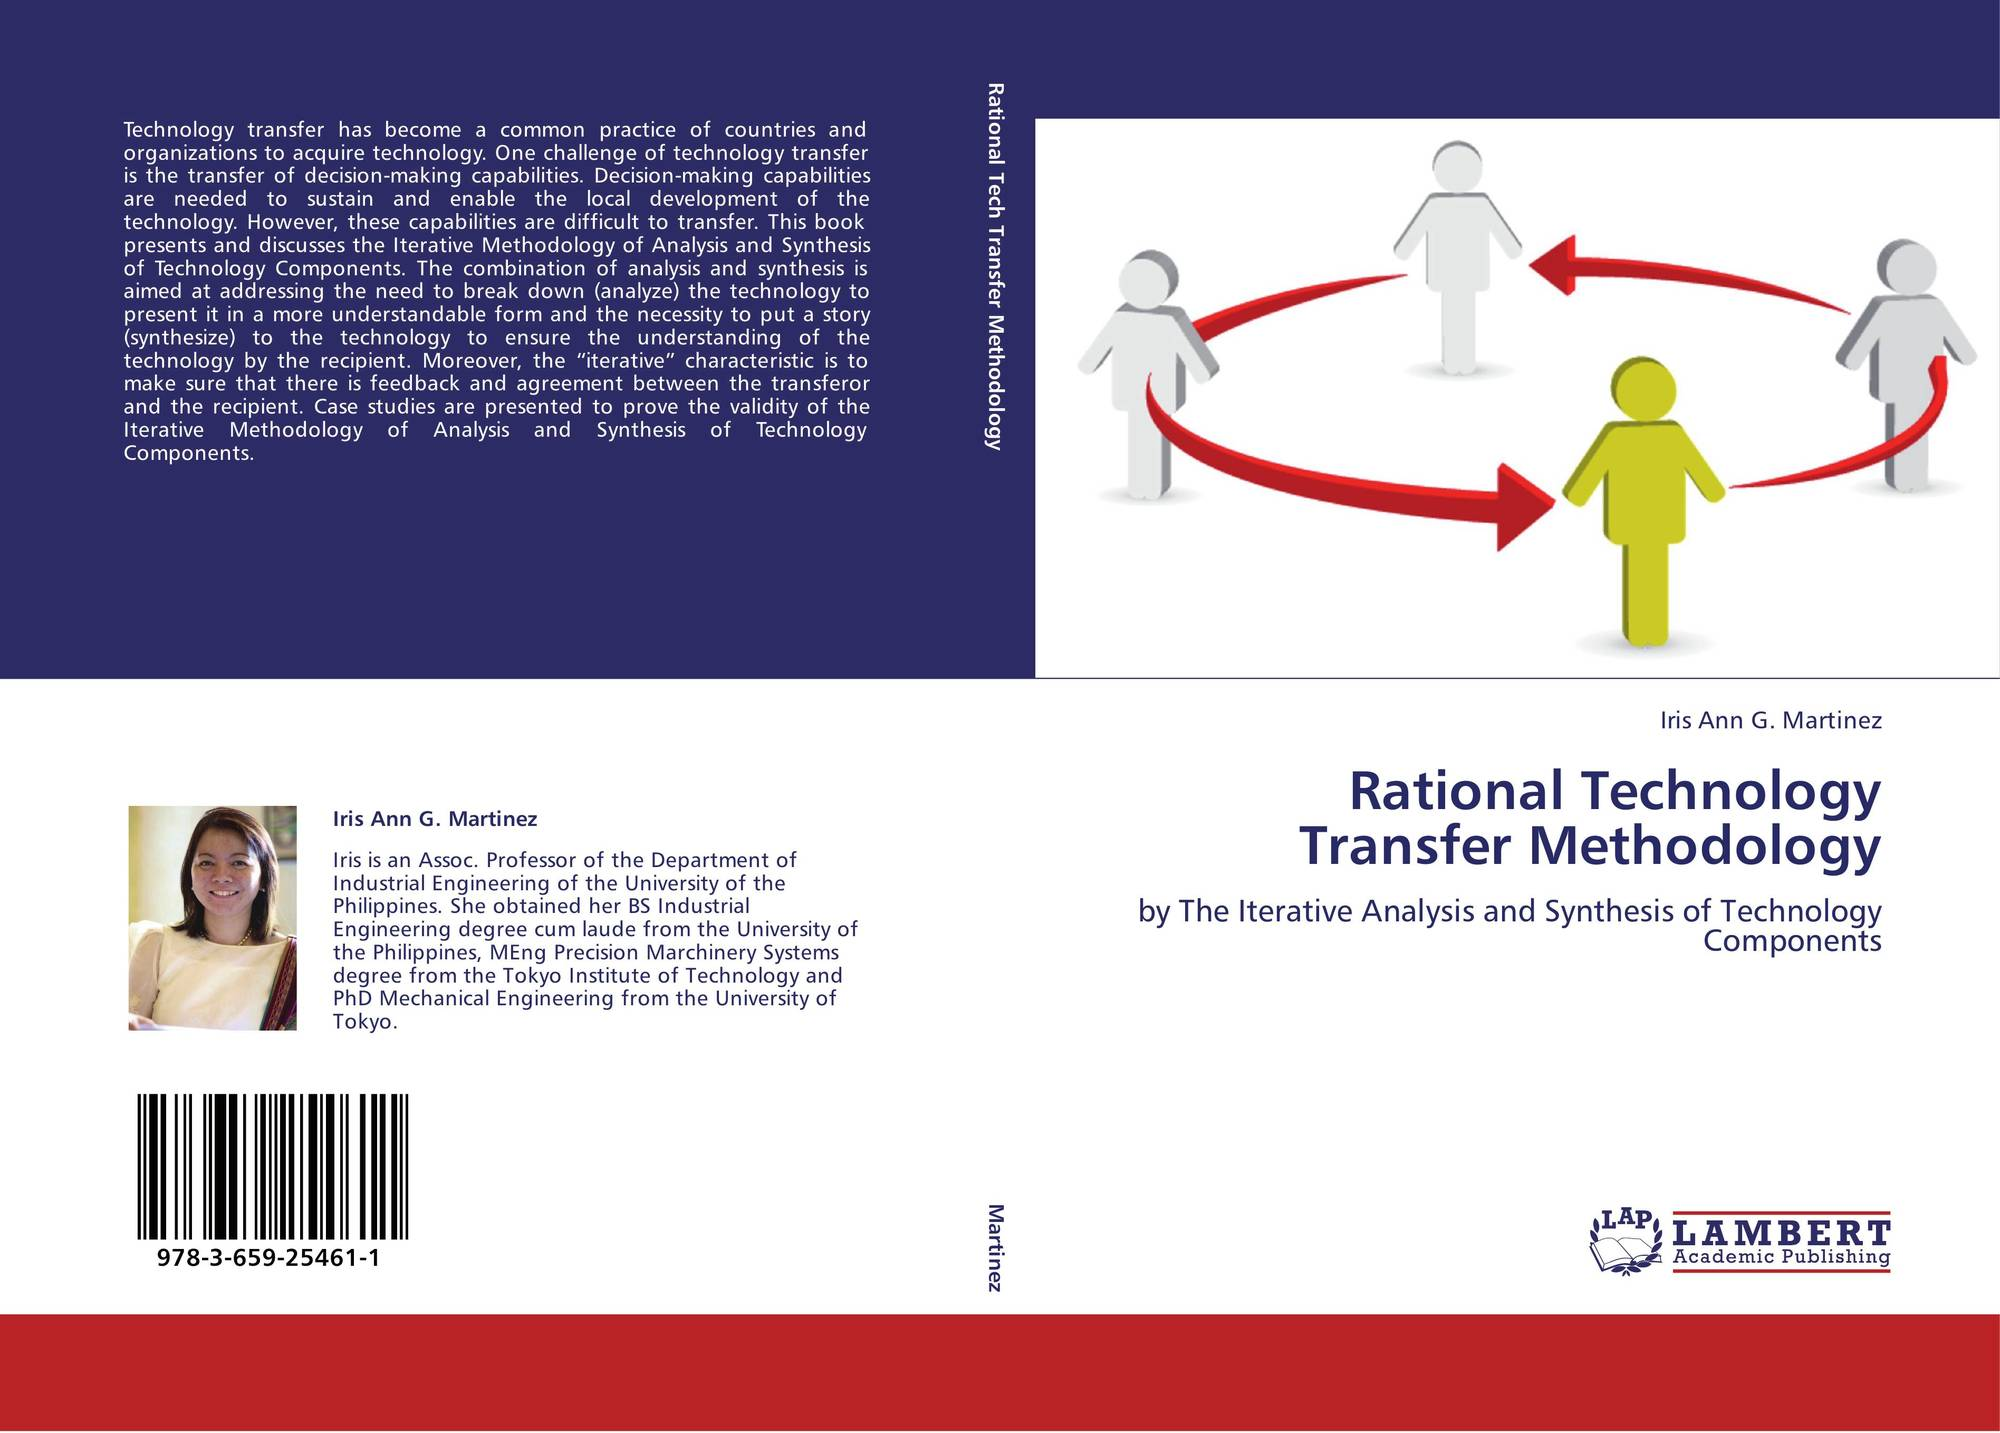 thesis on technology transfer